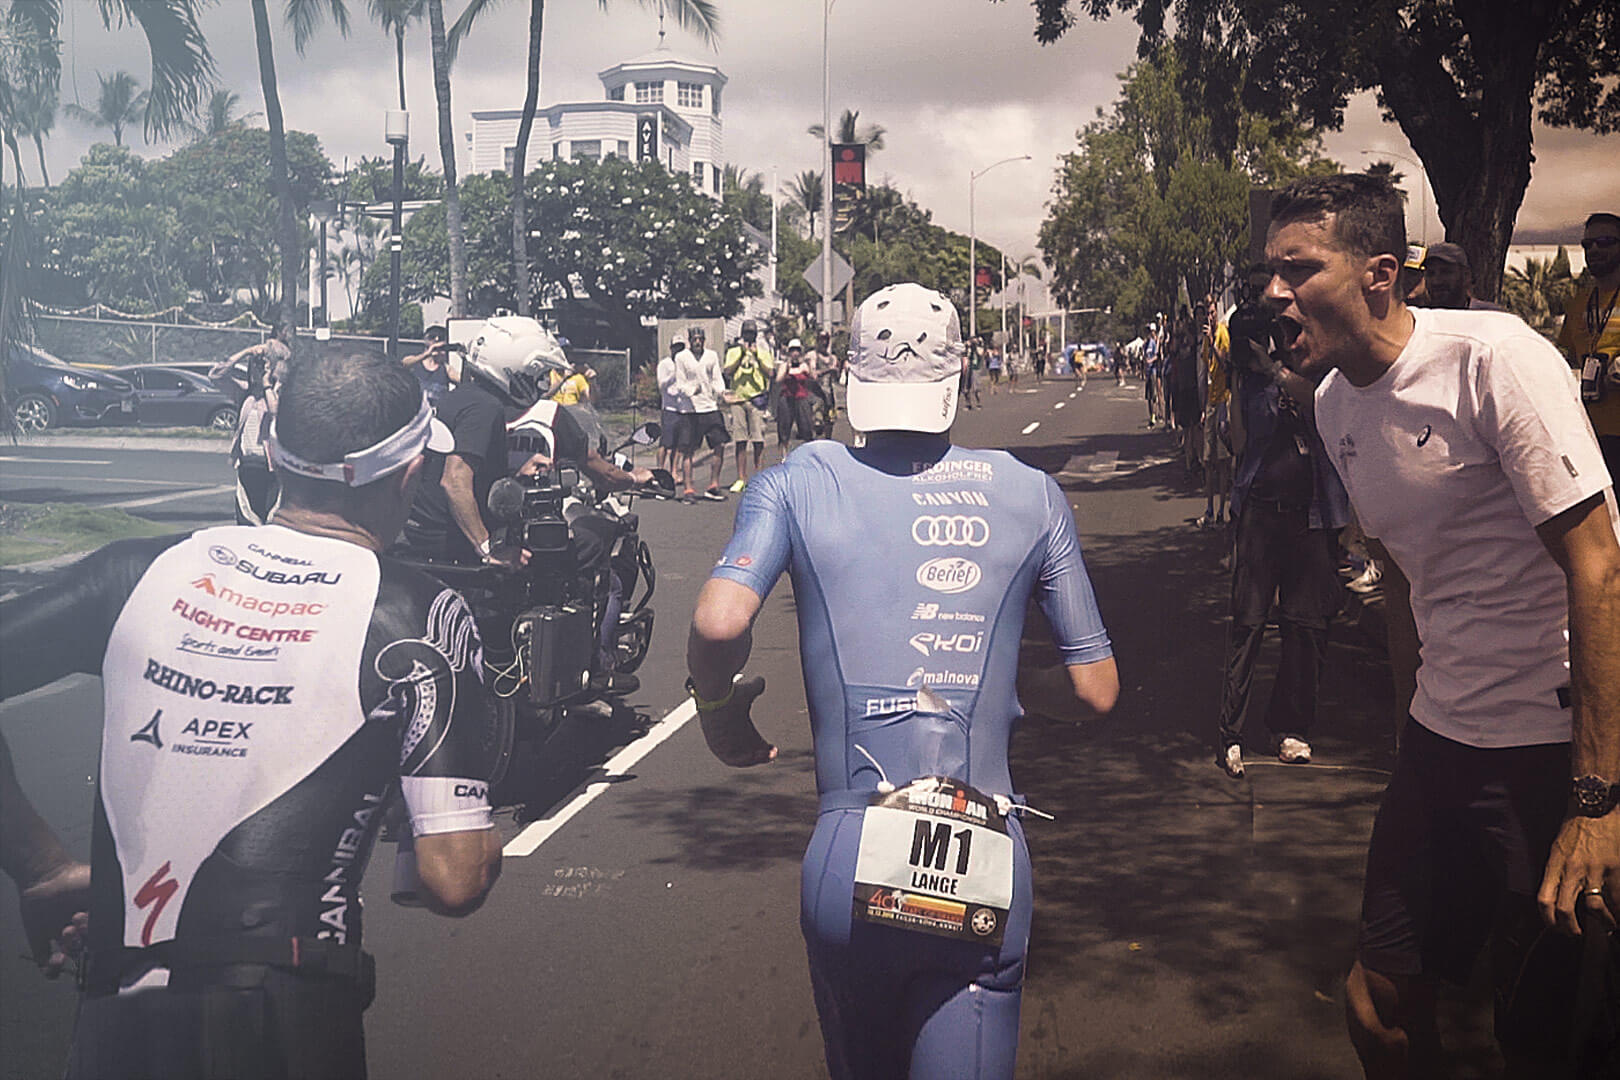 KONA Show Episode 7 – Its Raceday